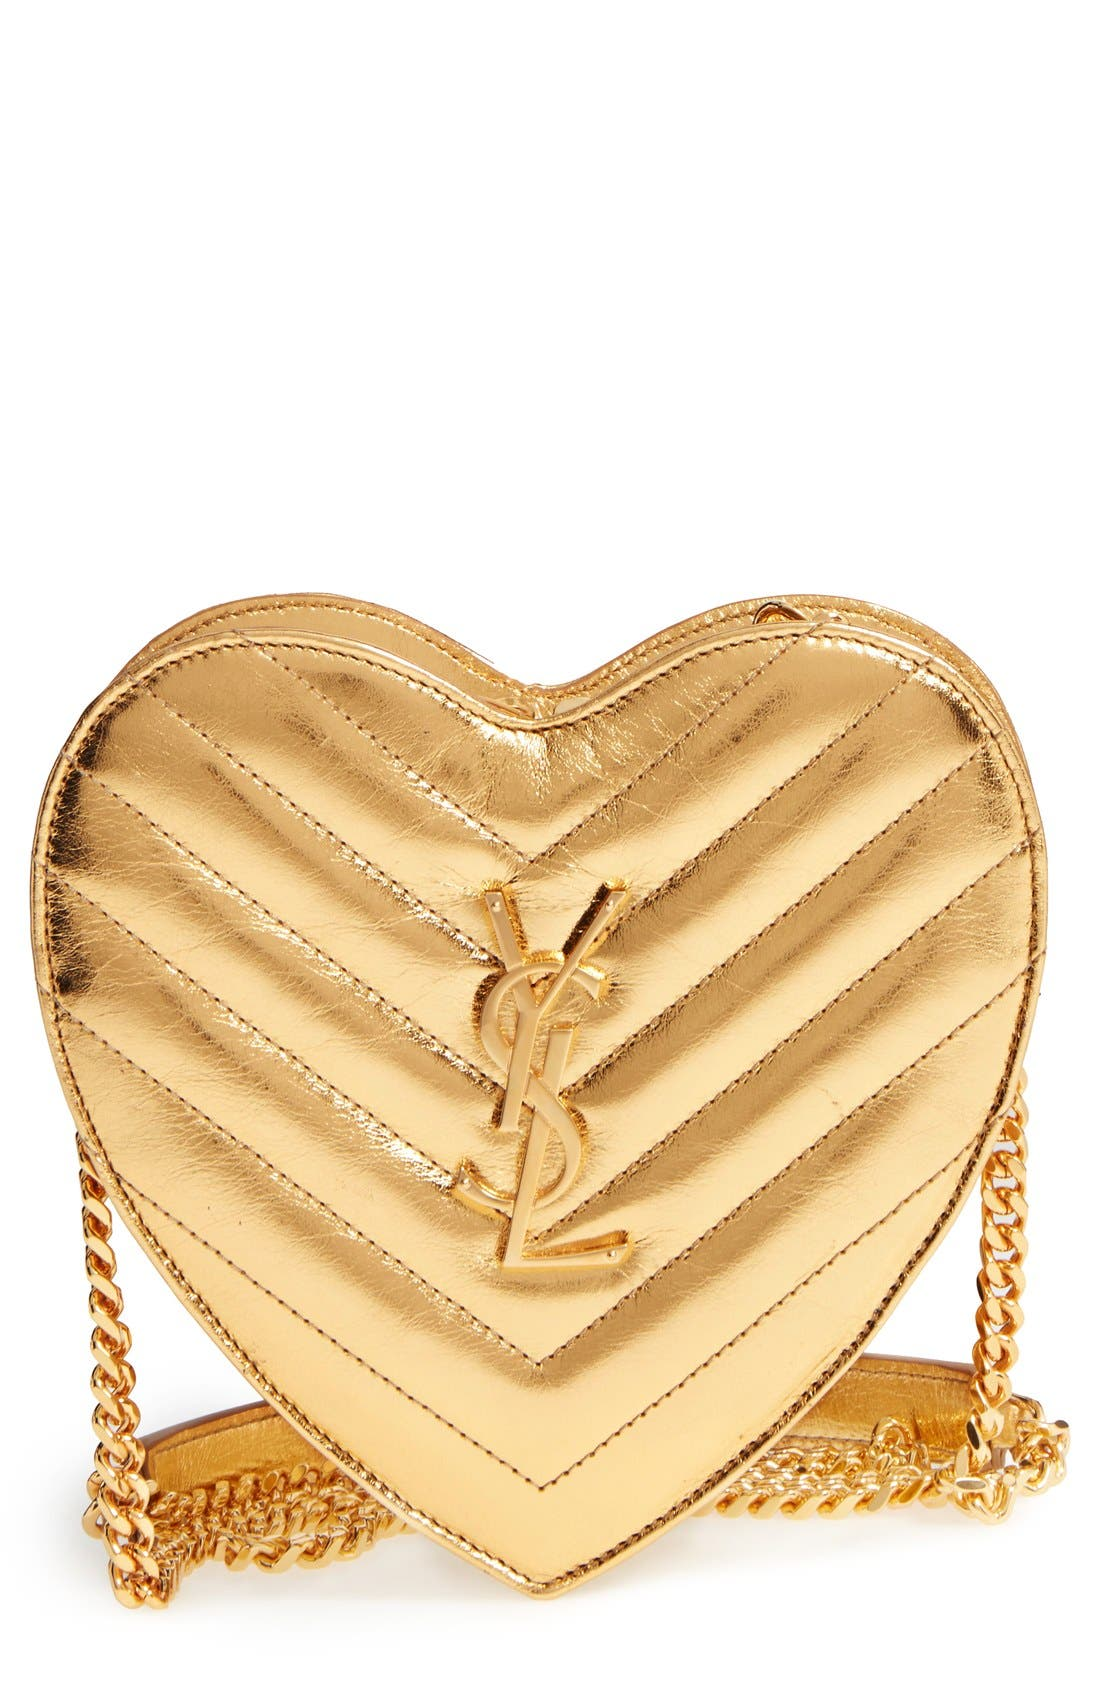 SAINT LAURENT,                             'Small Heart' Quilted Leather Crossbody Bag,                             Main thumbnail 1, color,                             717